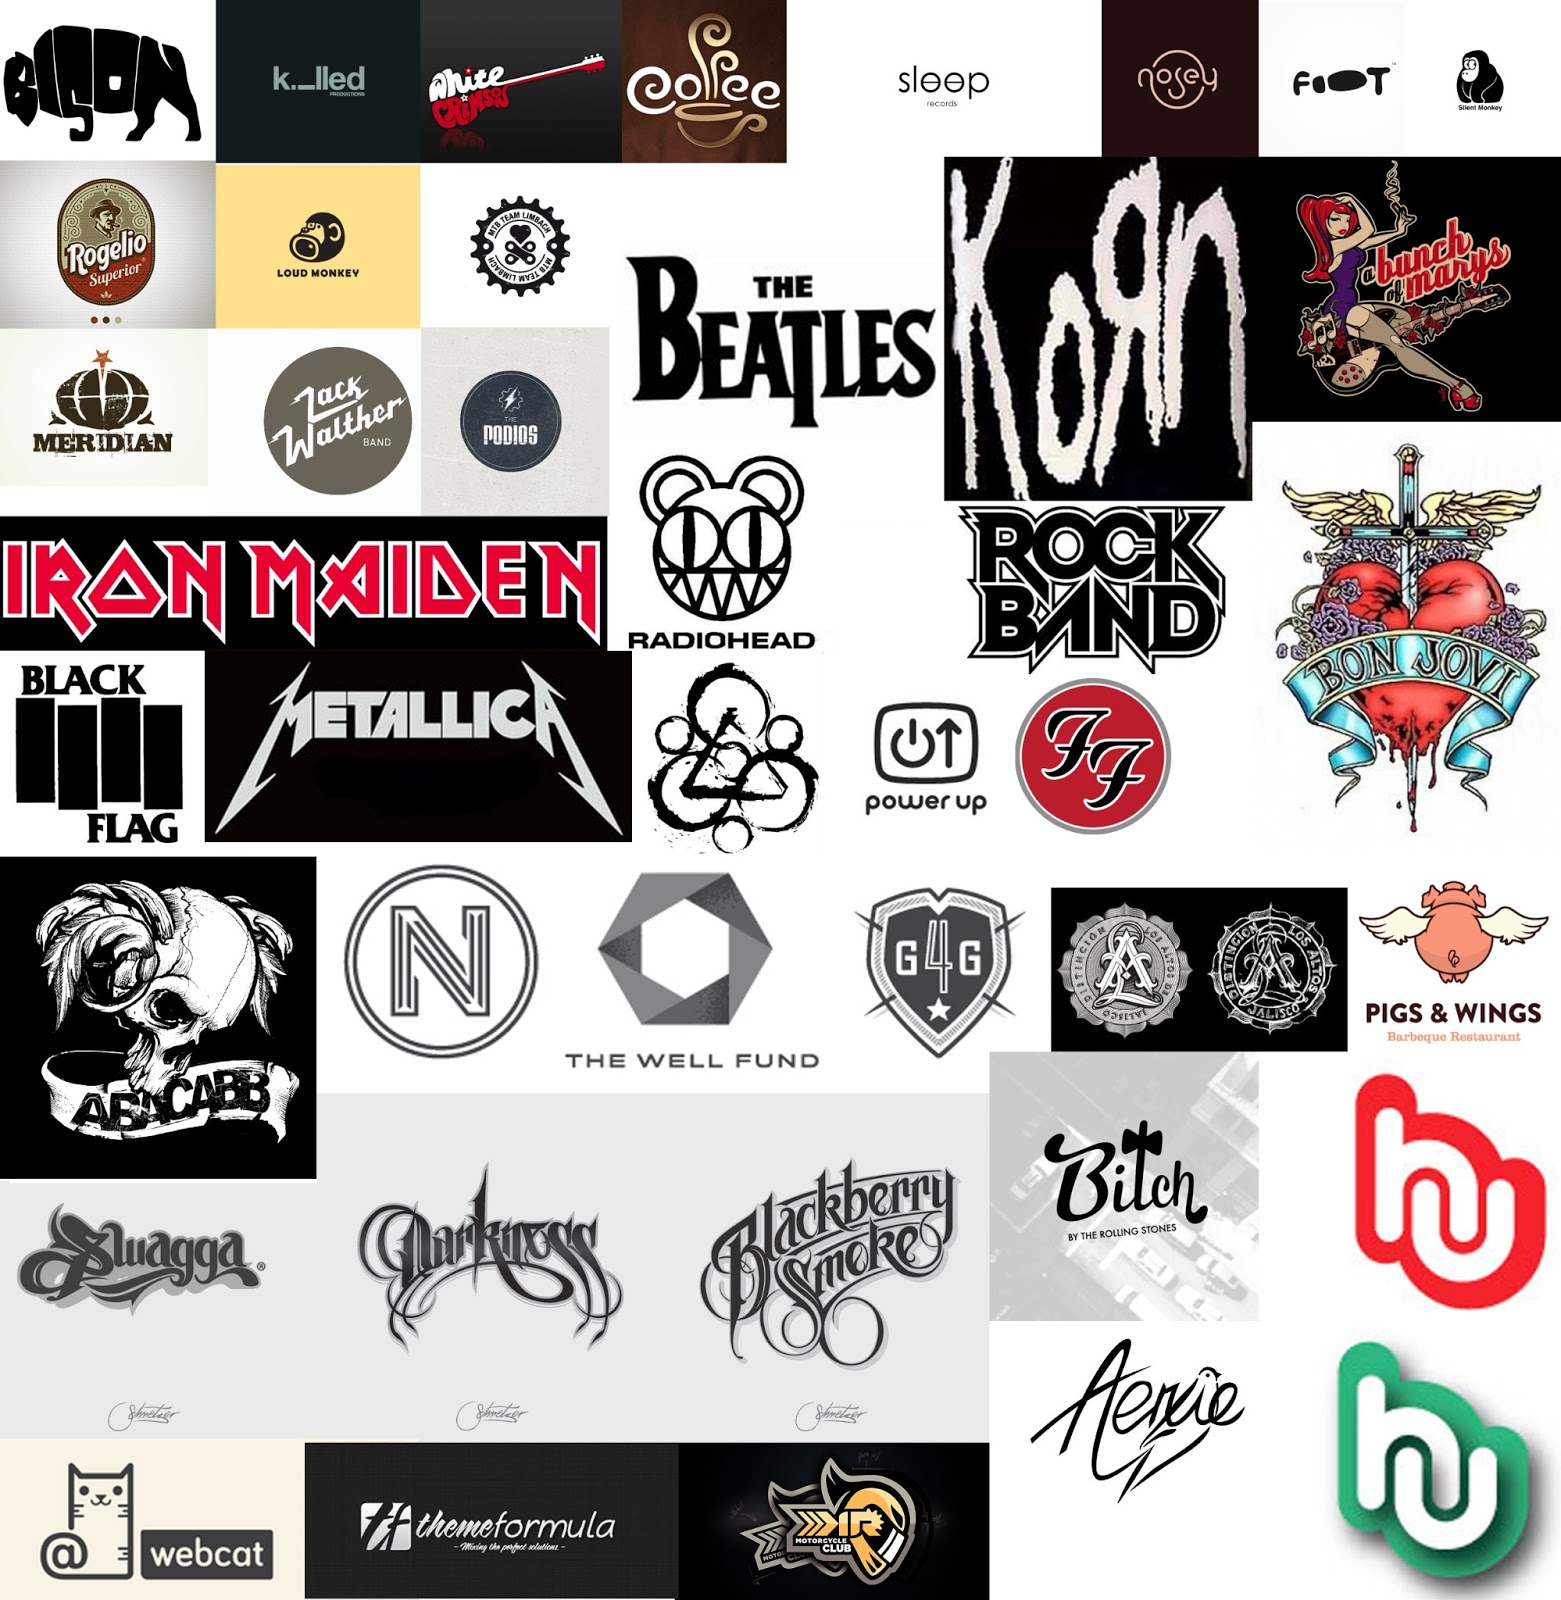 Logo Design Research - Mood Boards & Inspirational Designs